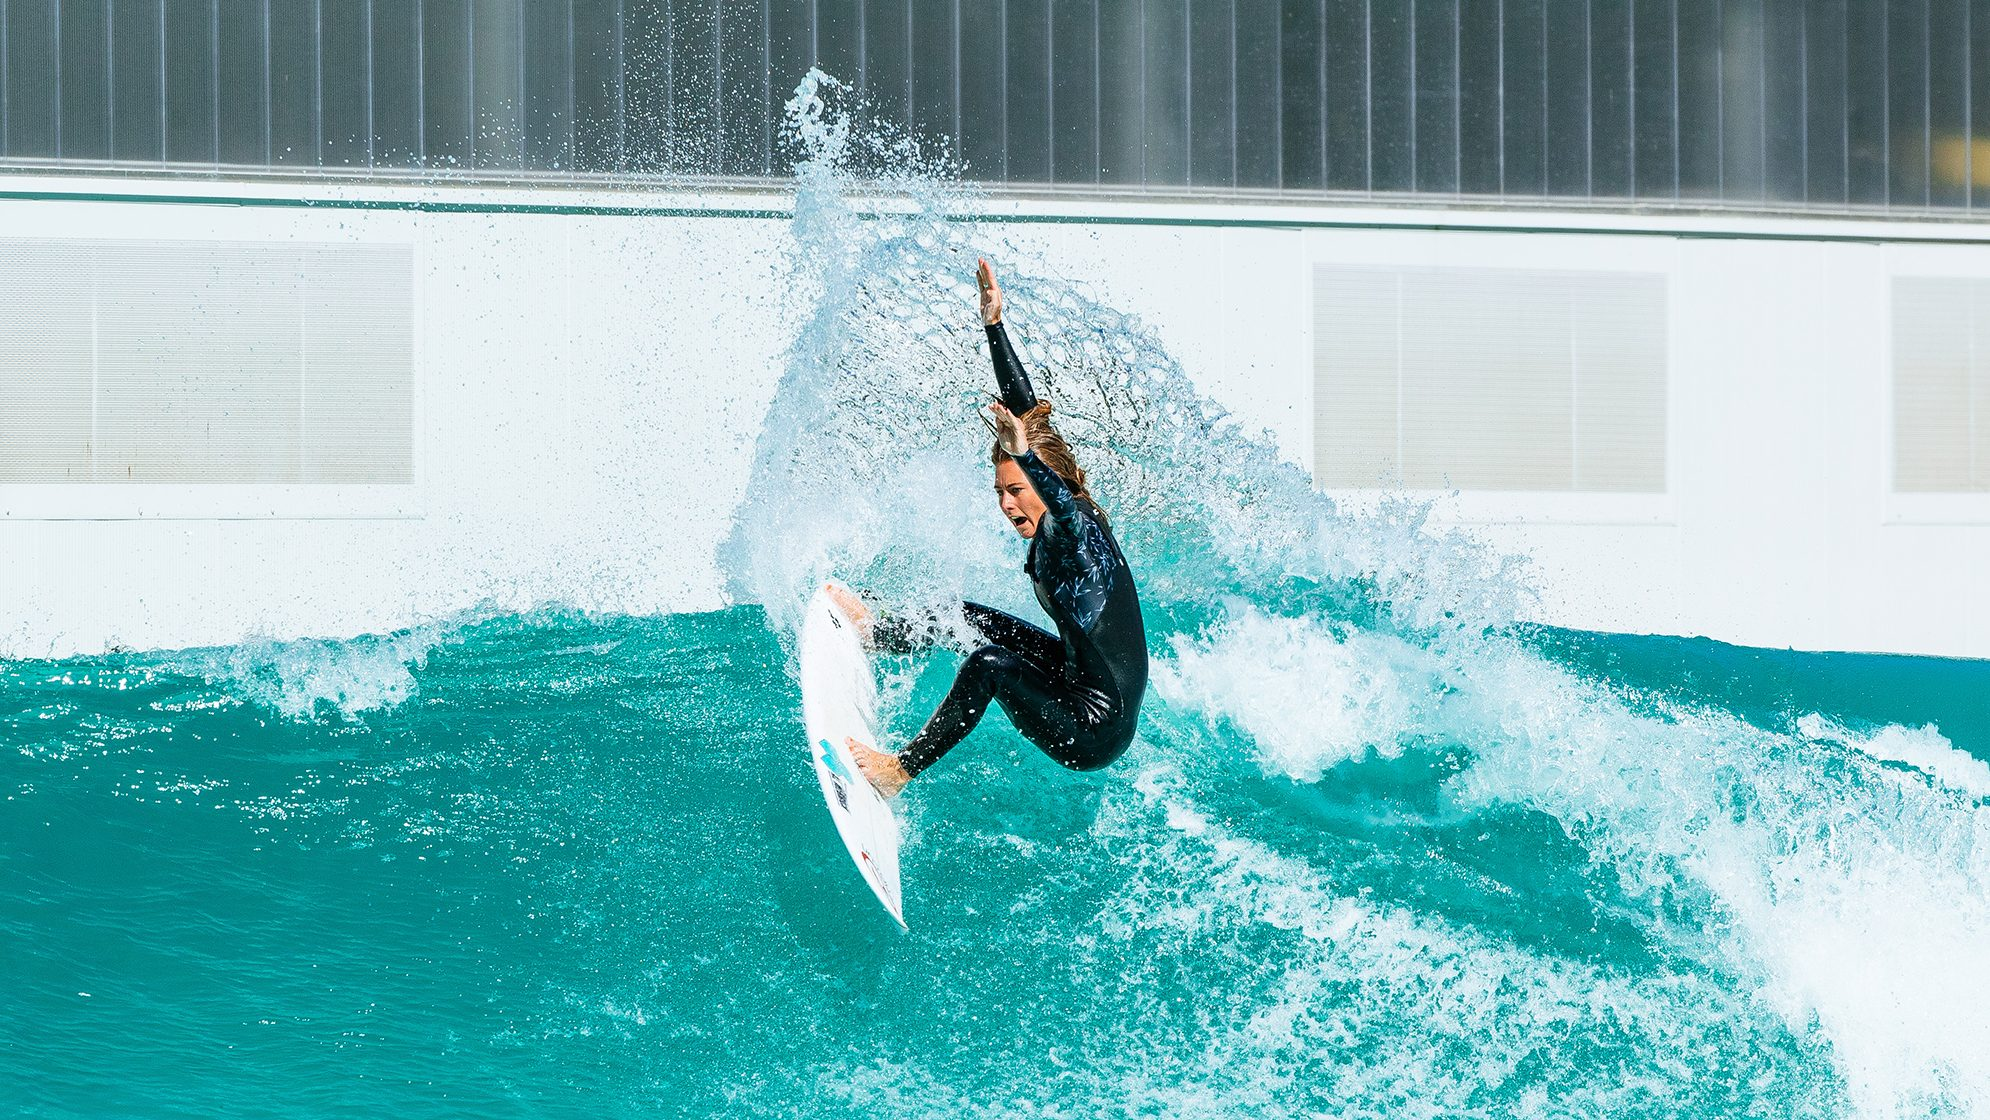 Nikki Van Dijk at Wavegarden test facility: Photo Sloane